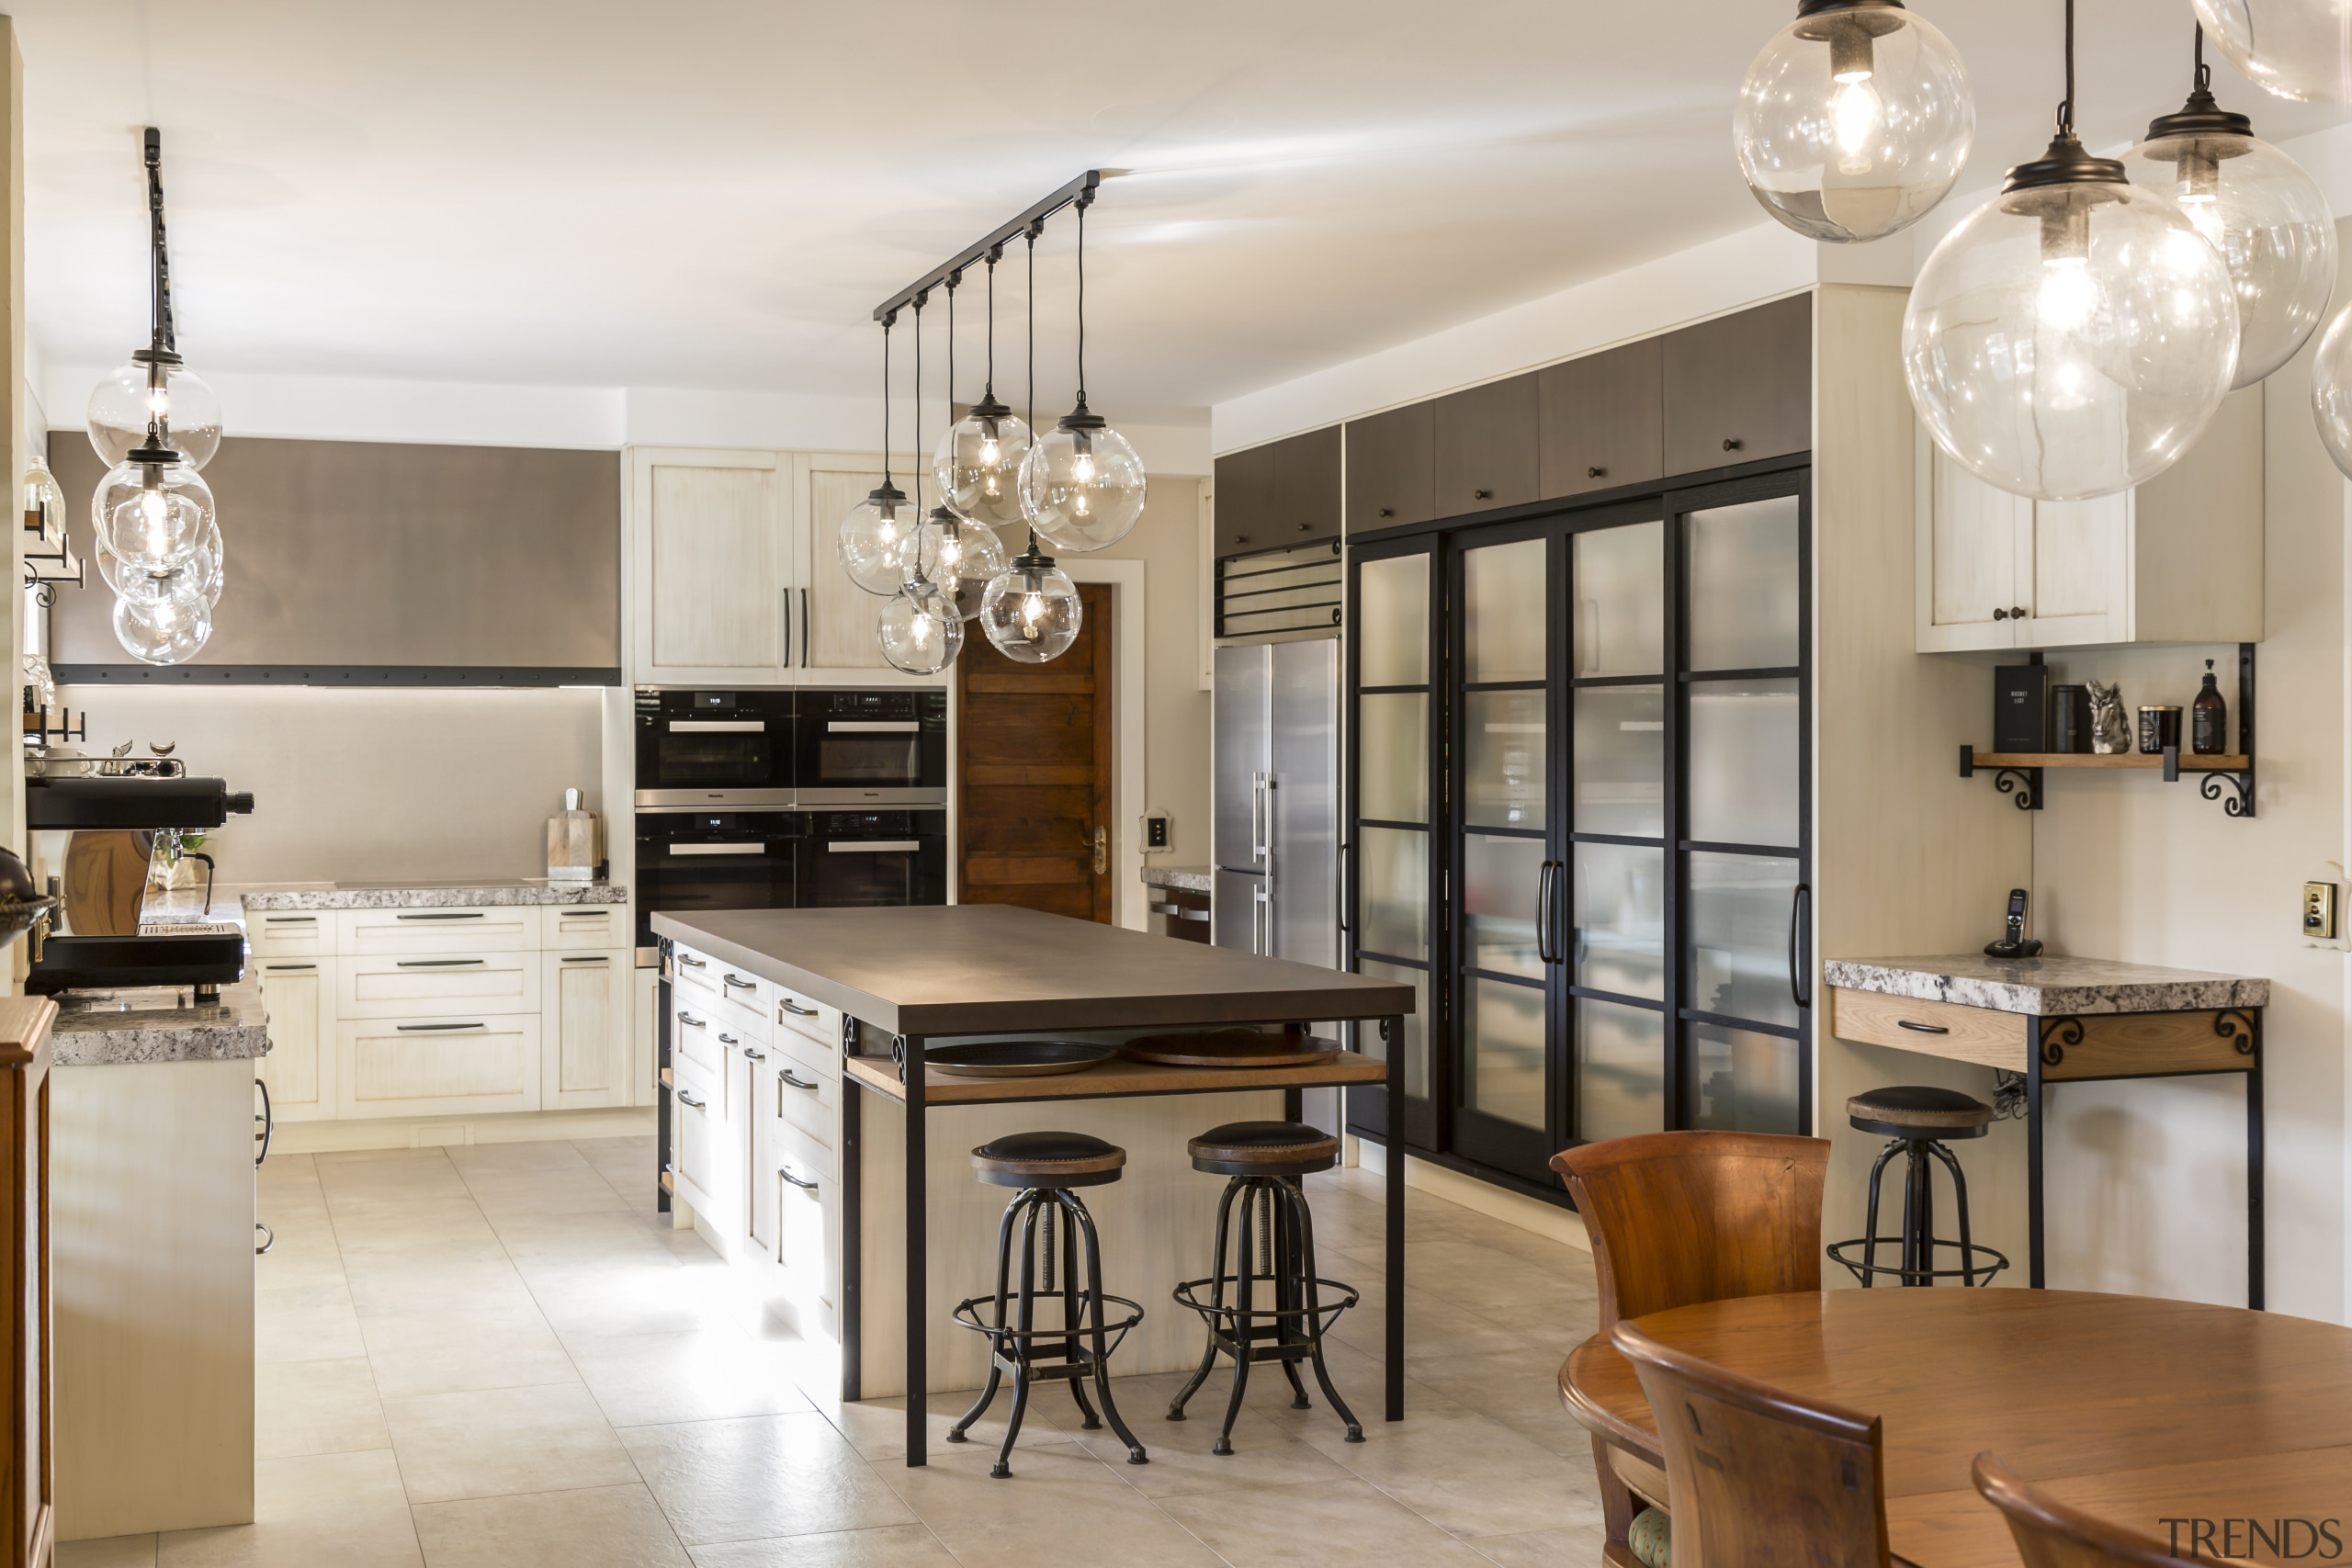 This renovated kitchens large central island includes storage cabinetry, countertop, cuisine classique, interior design, kitchen, room, white